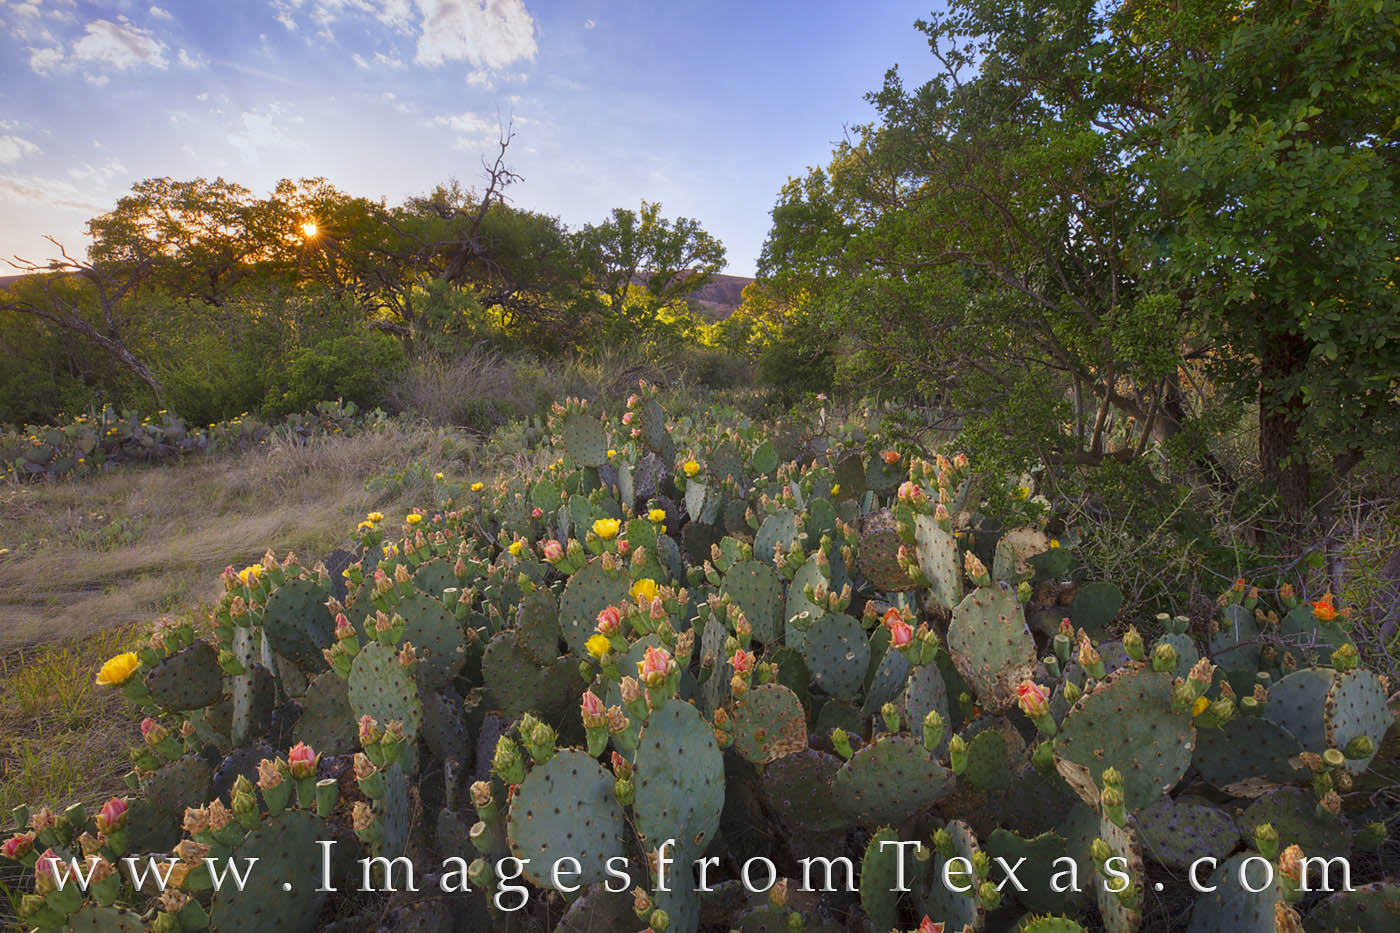 prickly pear, prickly pear blooms, enchanted rock, wildflowers, texas hill country, cactus, cacti, texas wildflowers, hill country, photo